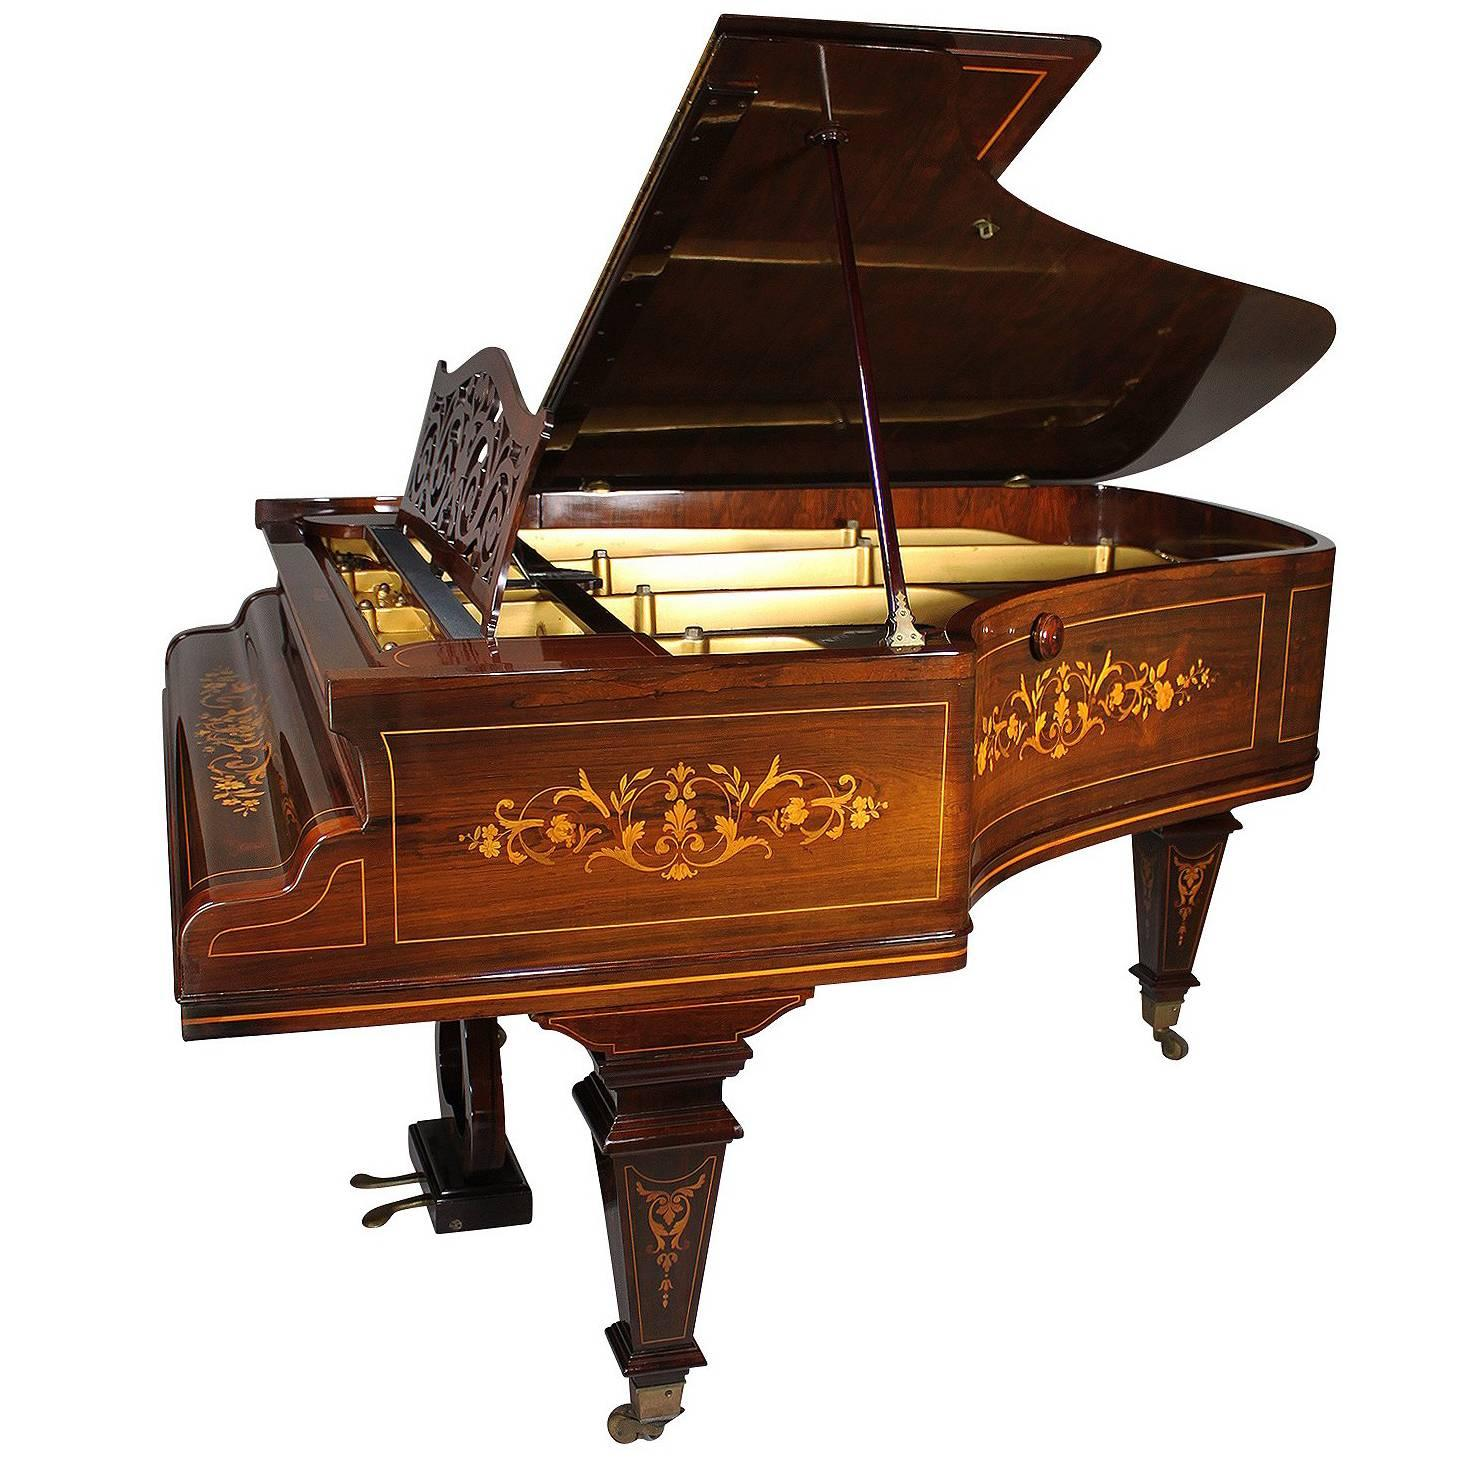 19th Century Louis XIV Style Marquetry Baby Grand Piano by Collard & Collard